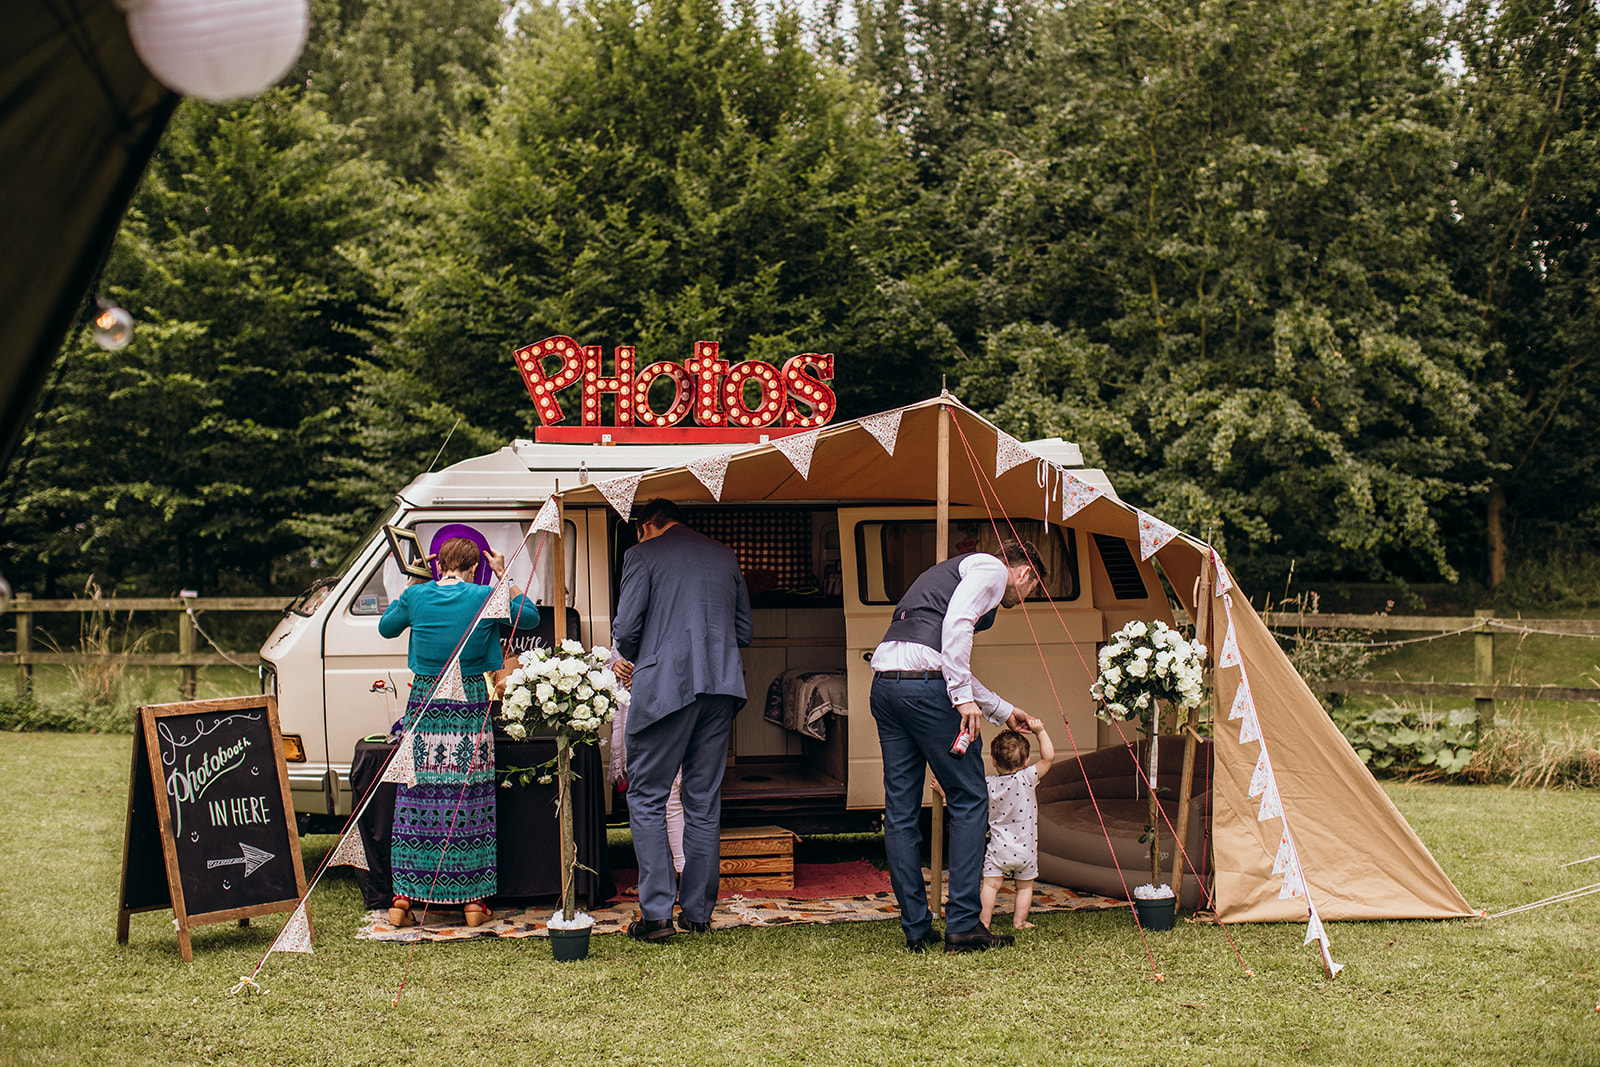 Wedding photo booth camper van